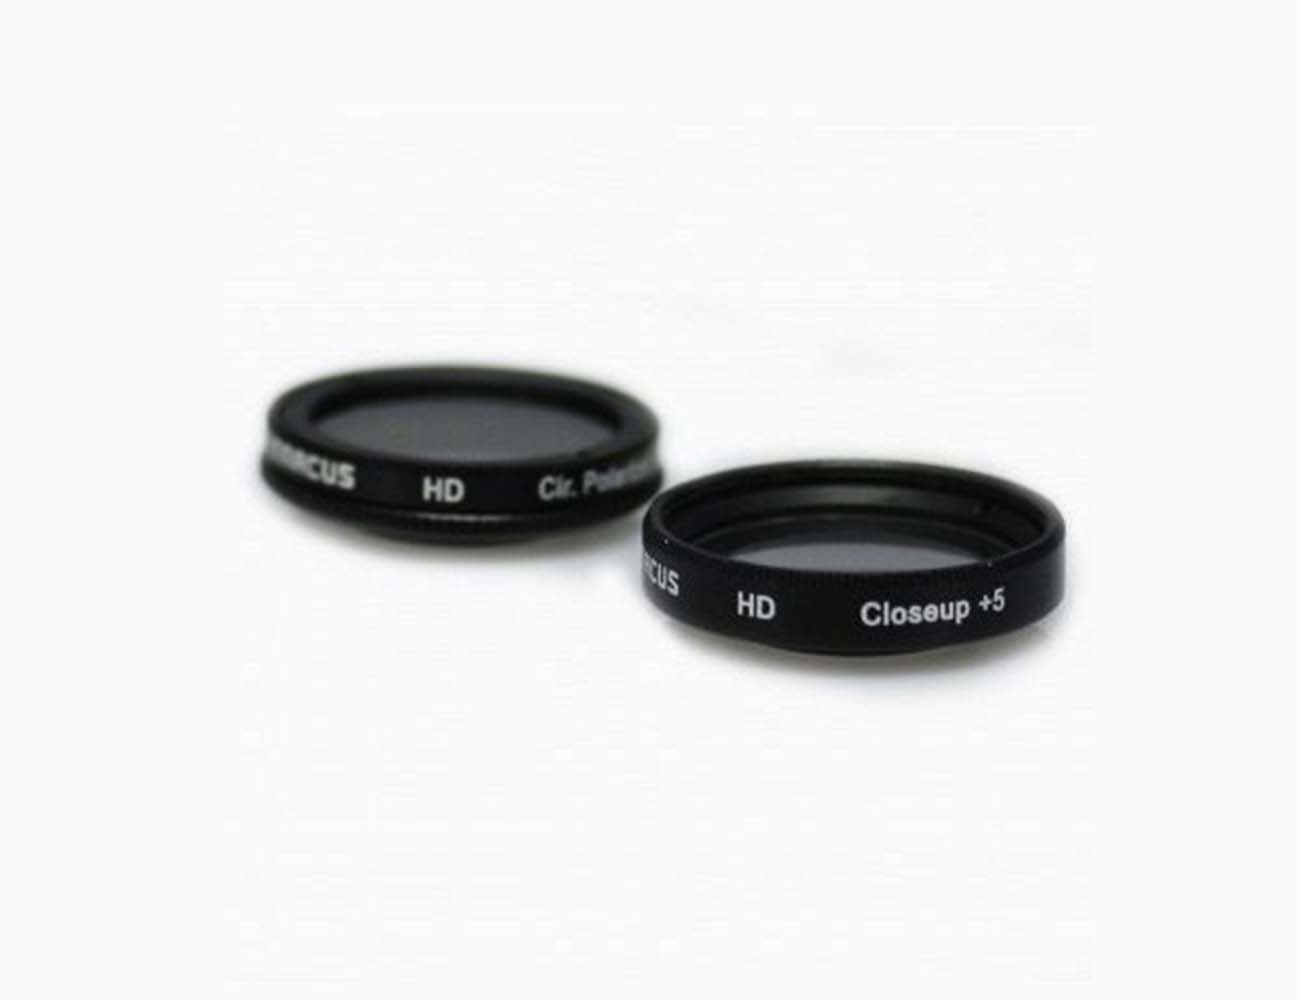 Inmacus 18mm HD Lens Kit and HD Macro Kit for iPhone 6/6+